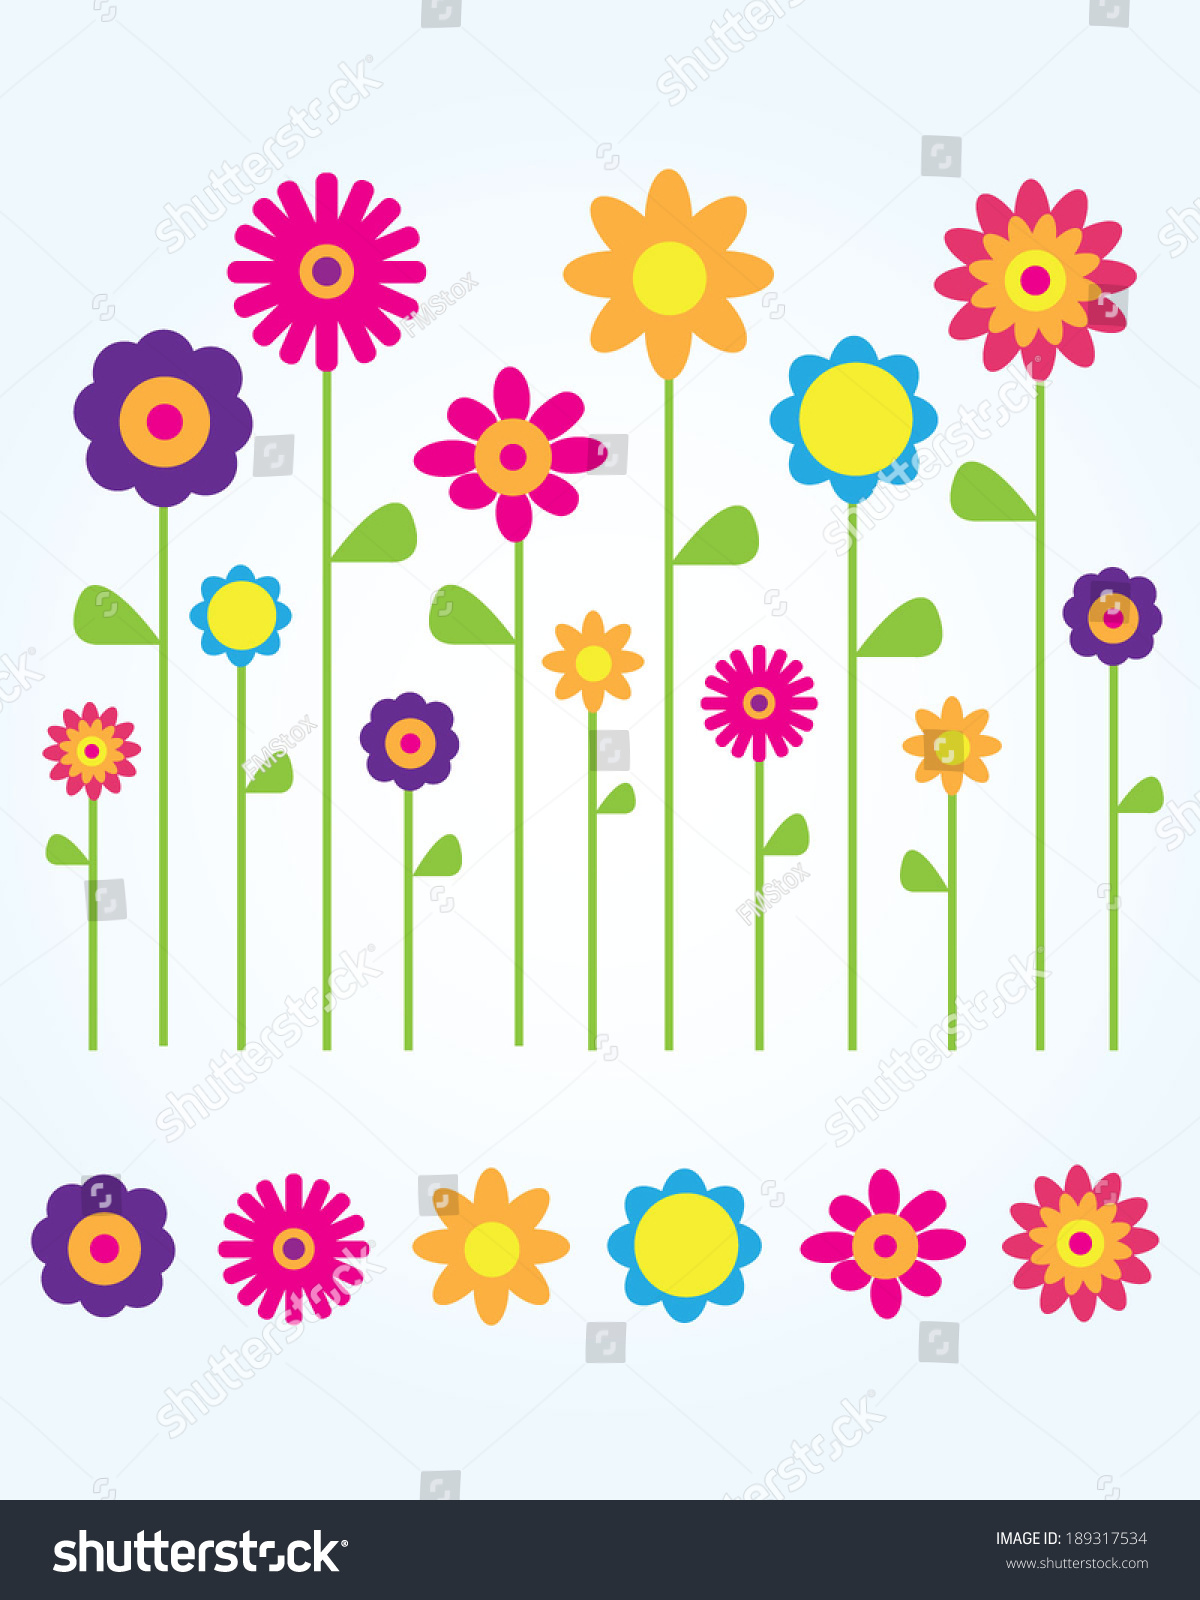 Collection cute fun vector spring flowers stok vektr 189317534 a collection of cute and fun vector spring flowers mightylinksfo